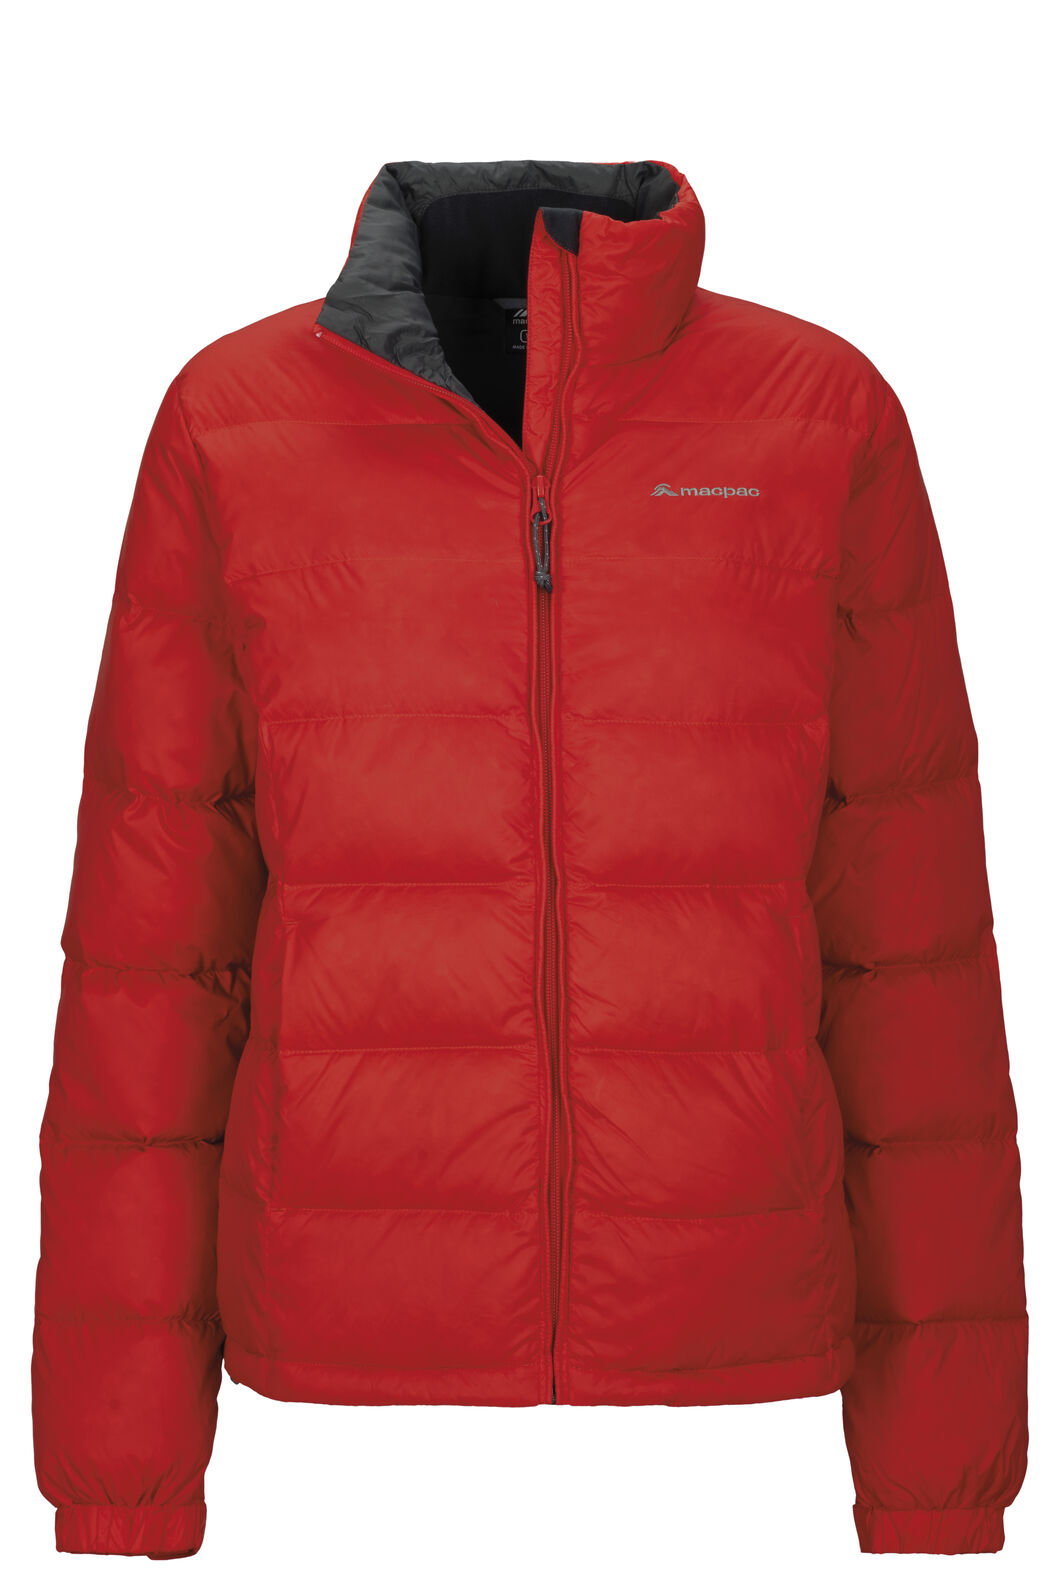 Macpac Halo Down Jacket — Women's, Fiery Red, hi-res